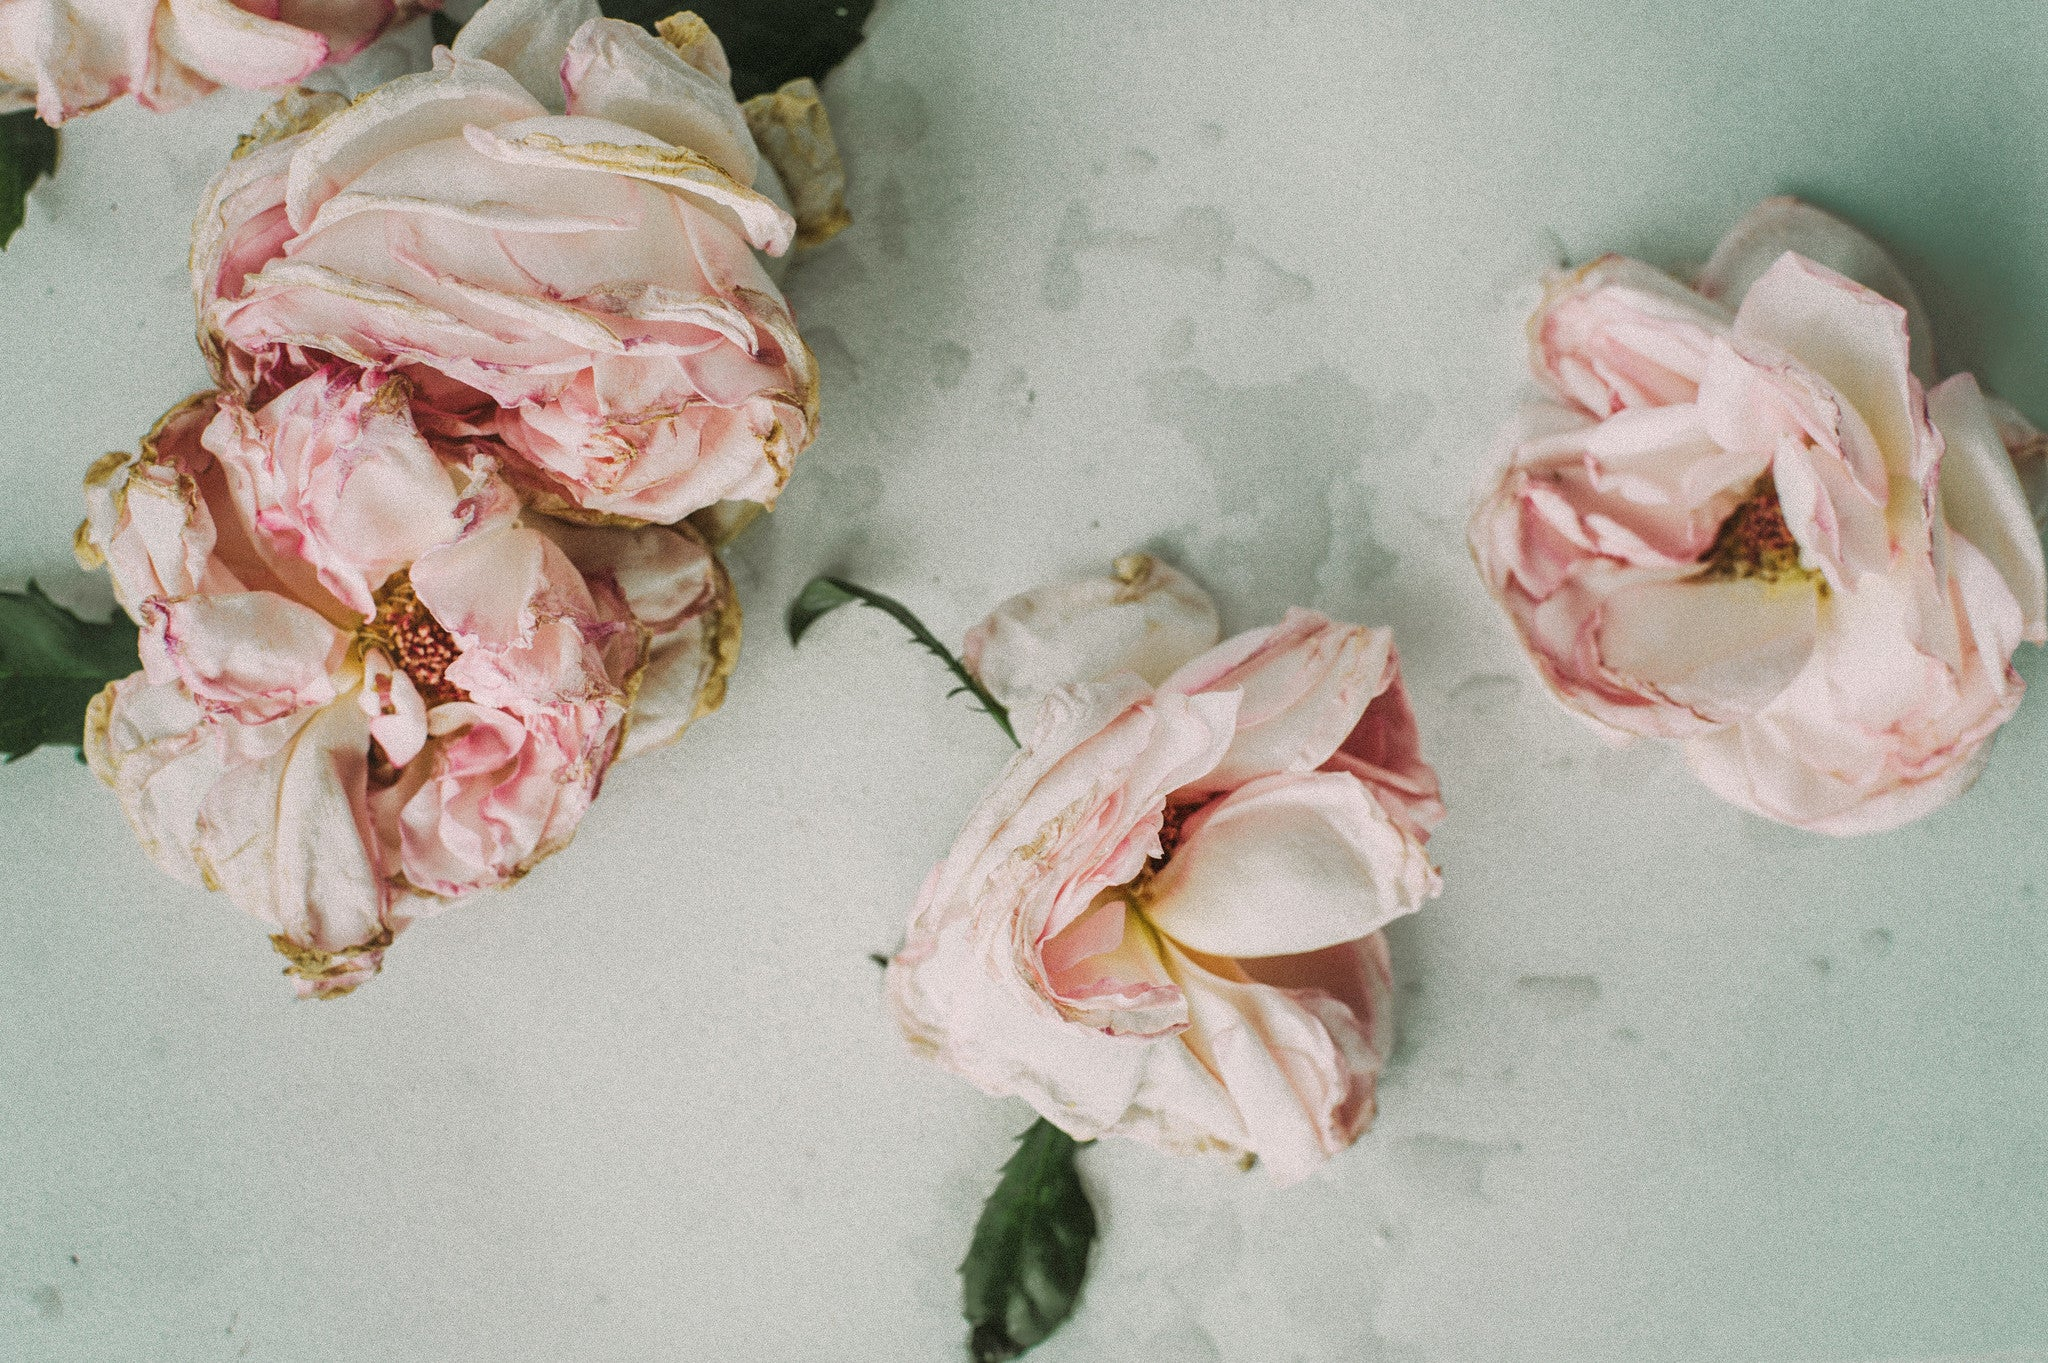 Ingredient Spotlight: Rosewater Benefits in Skin Care